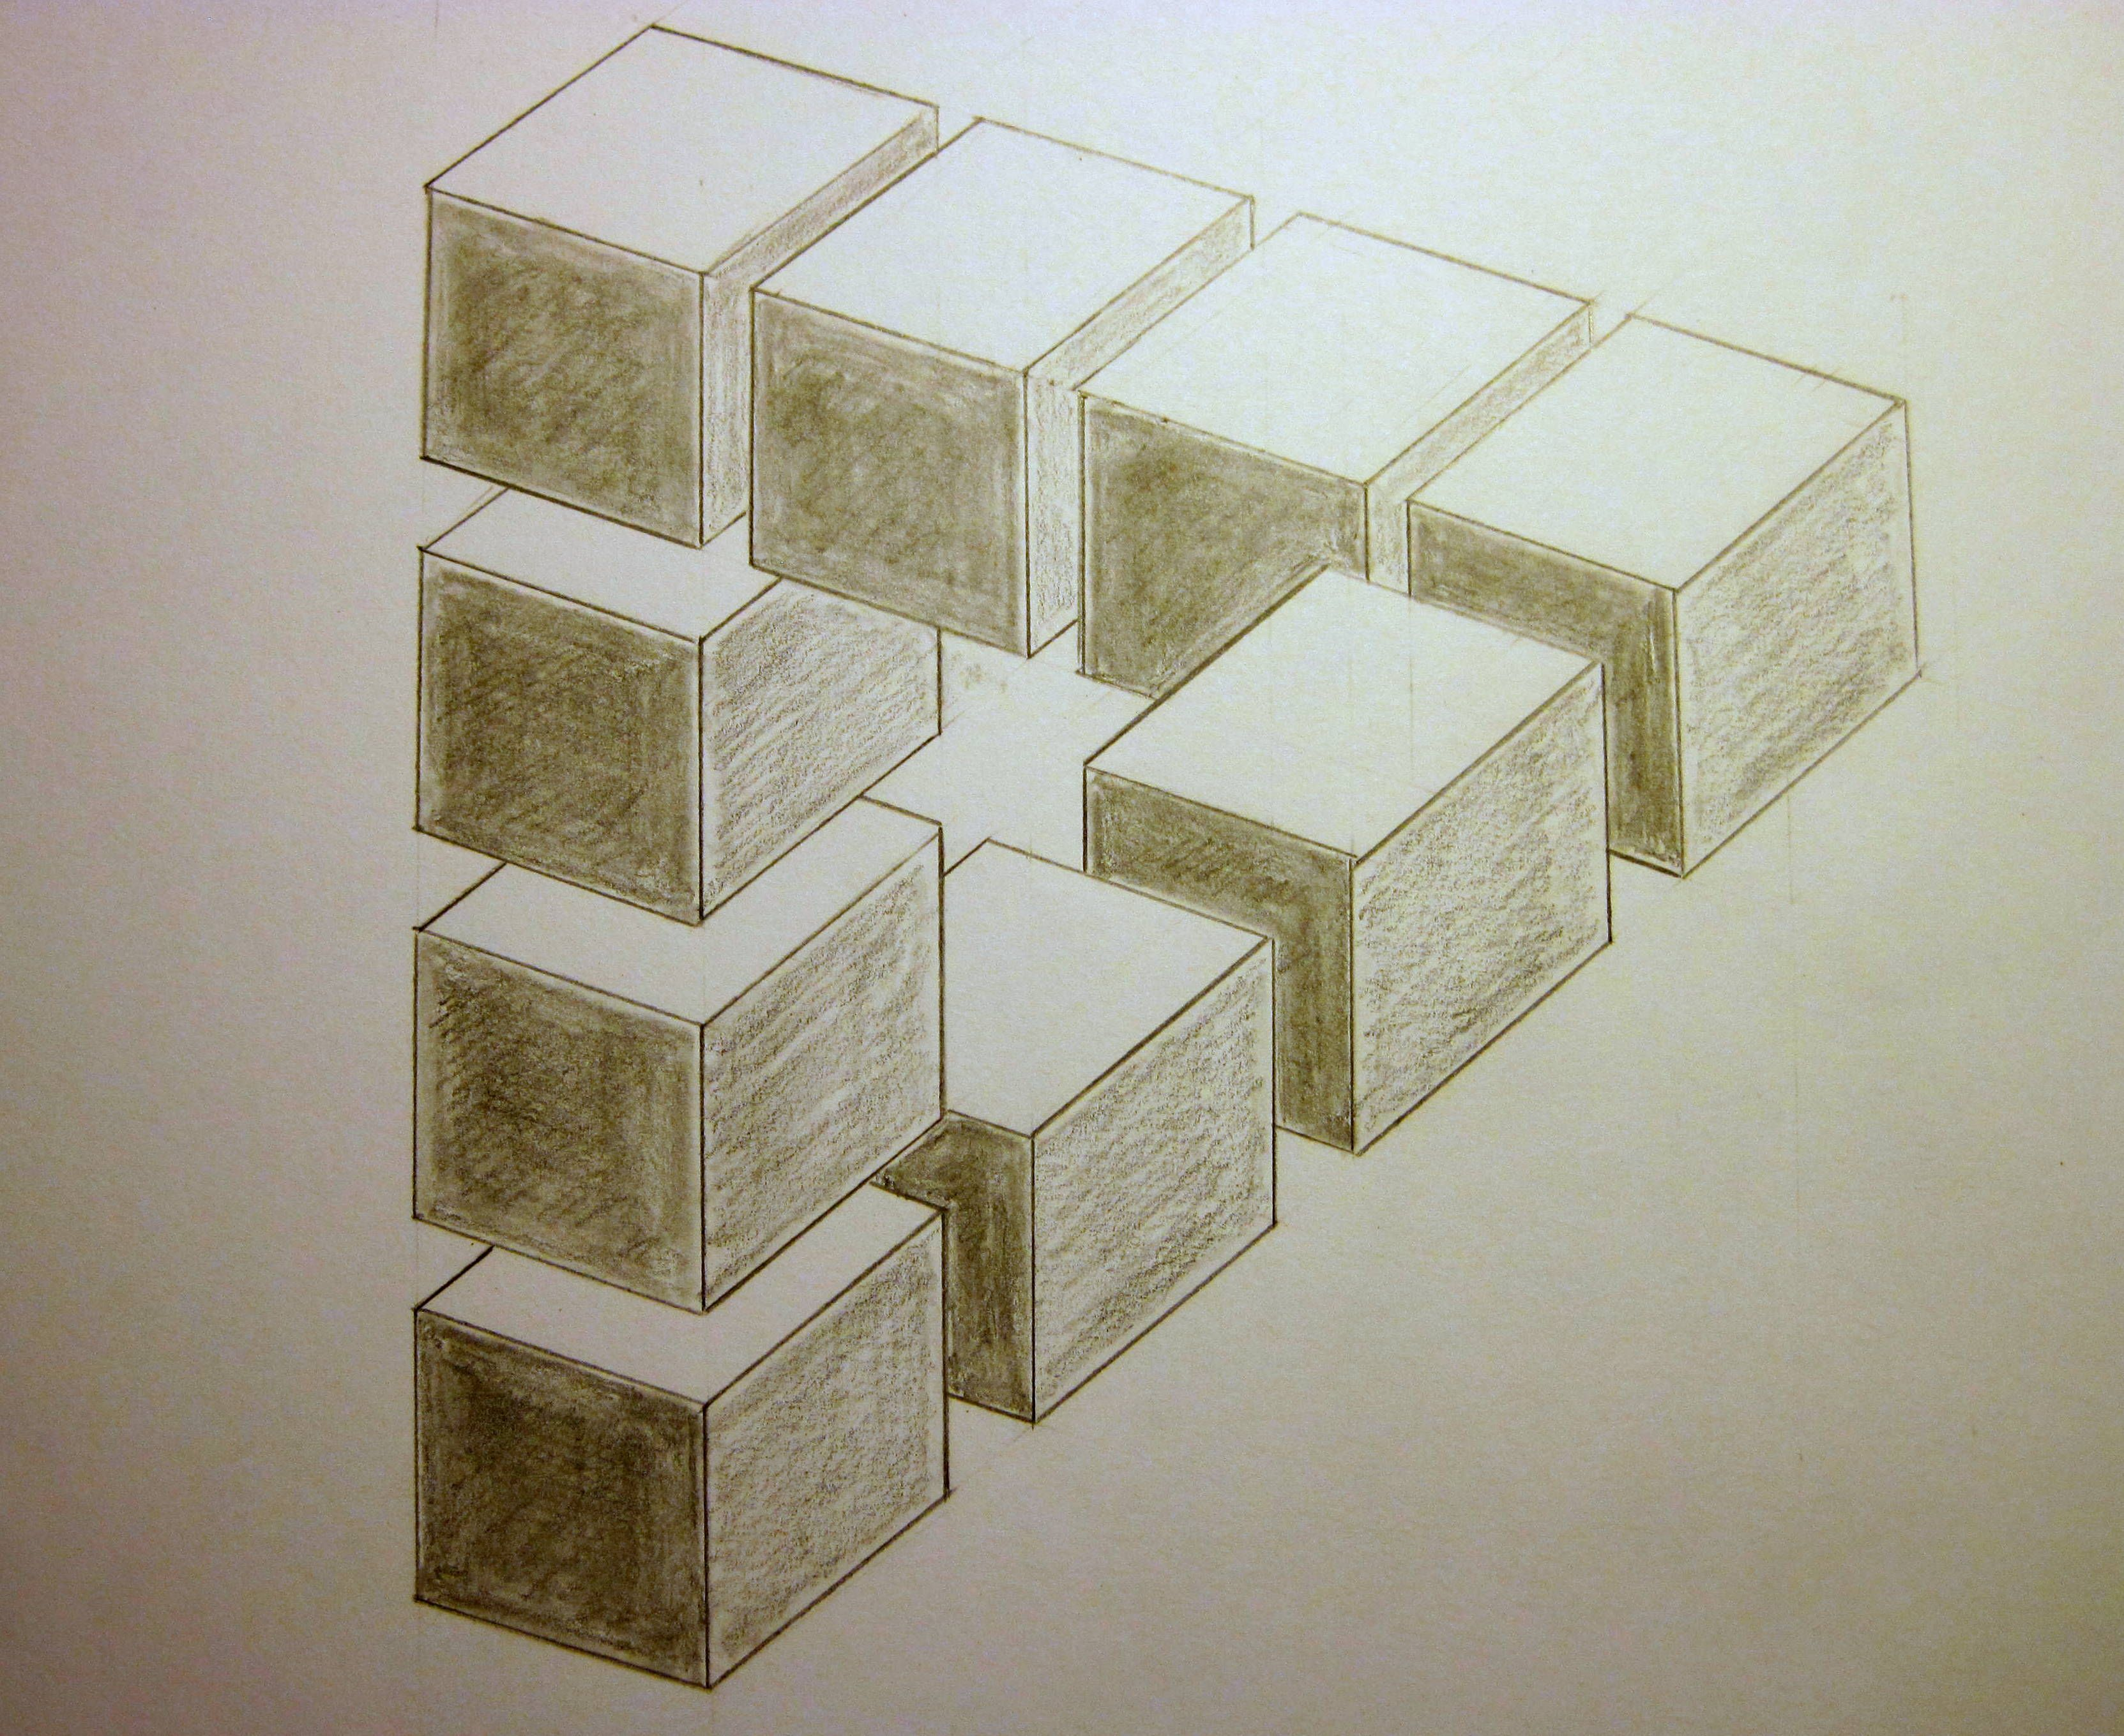 BrainBashers brain teasers puzzles riddles games and optical illusions new stuff daily Brain Binders can you fold this page into that shape red on one side